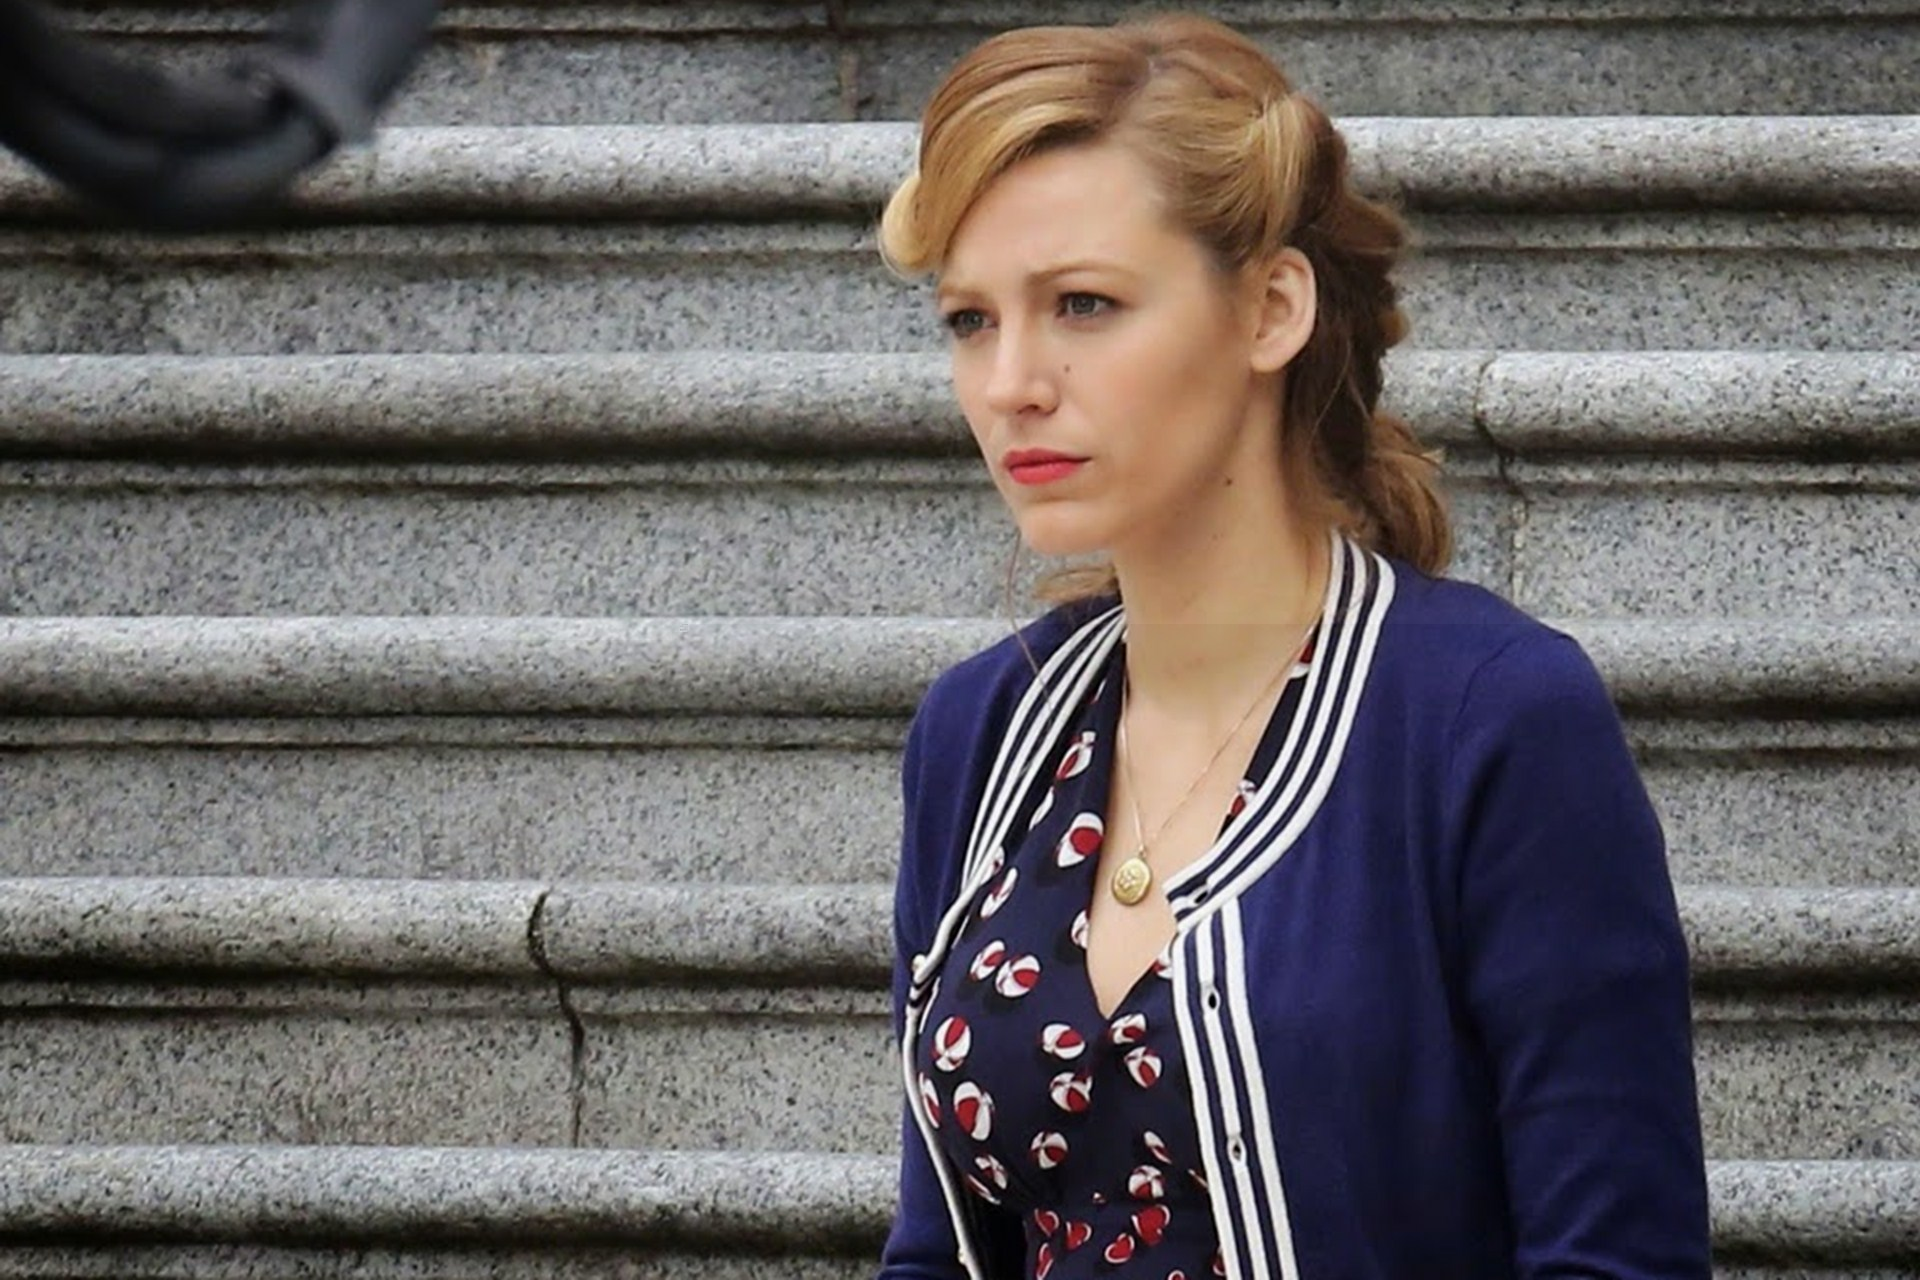 The Age of Adaline – Are You Excited to See It?